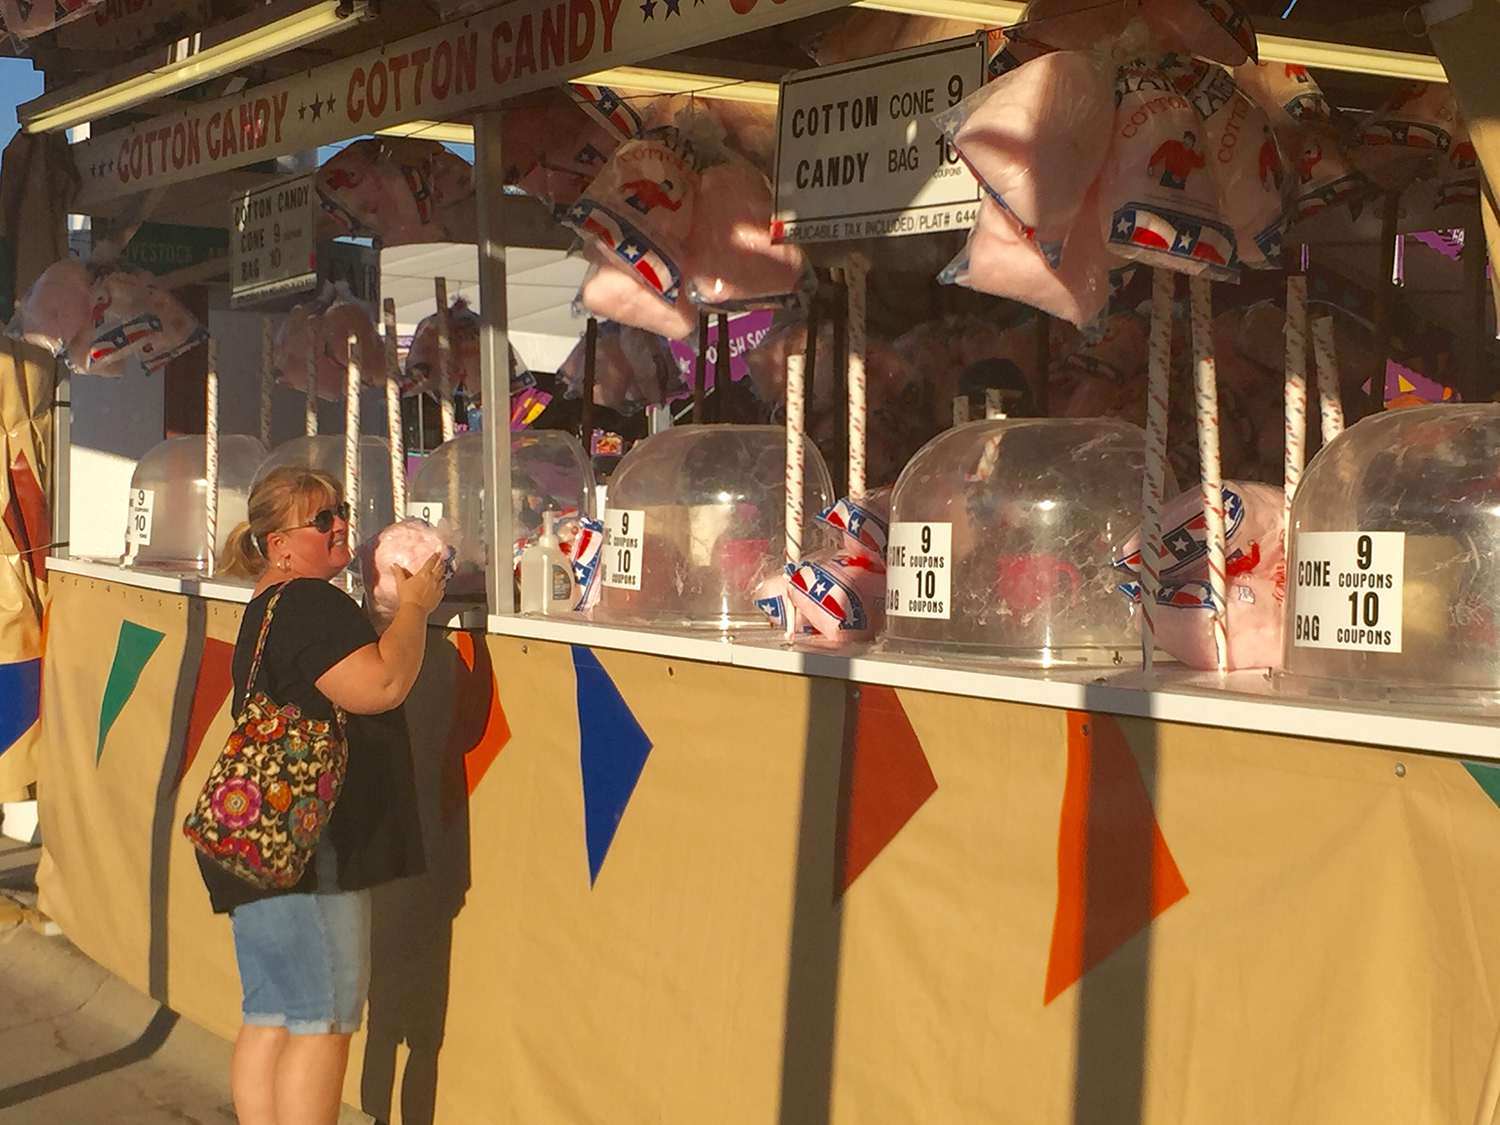 Cotton candy at the State Fair of Texas